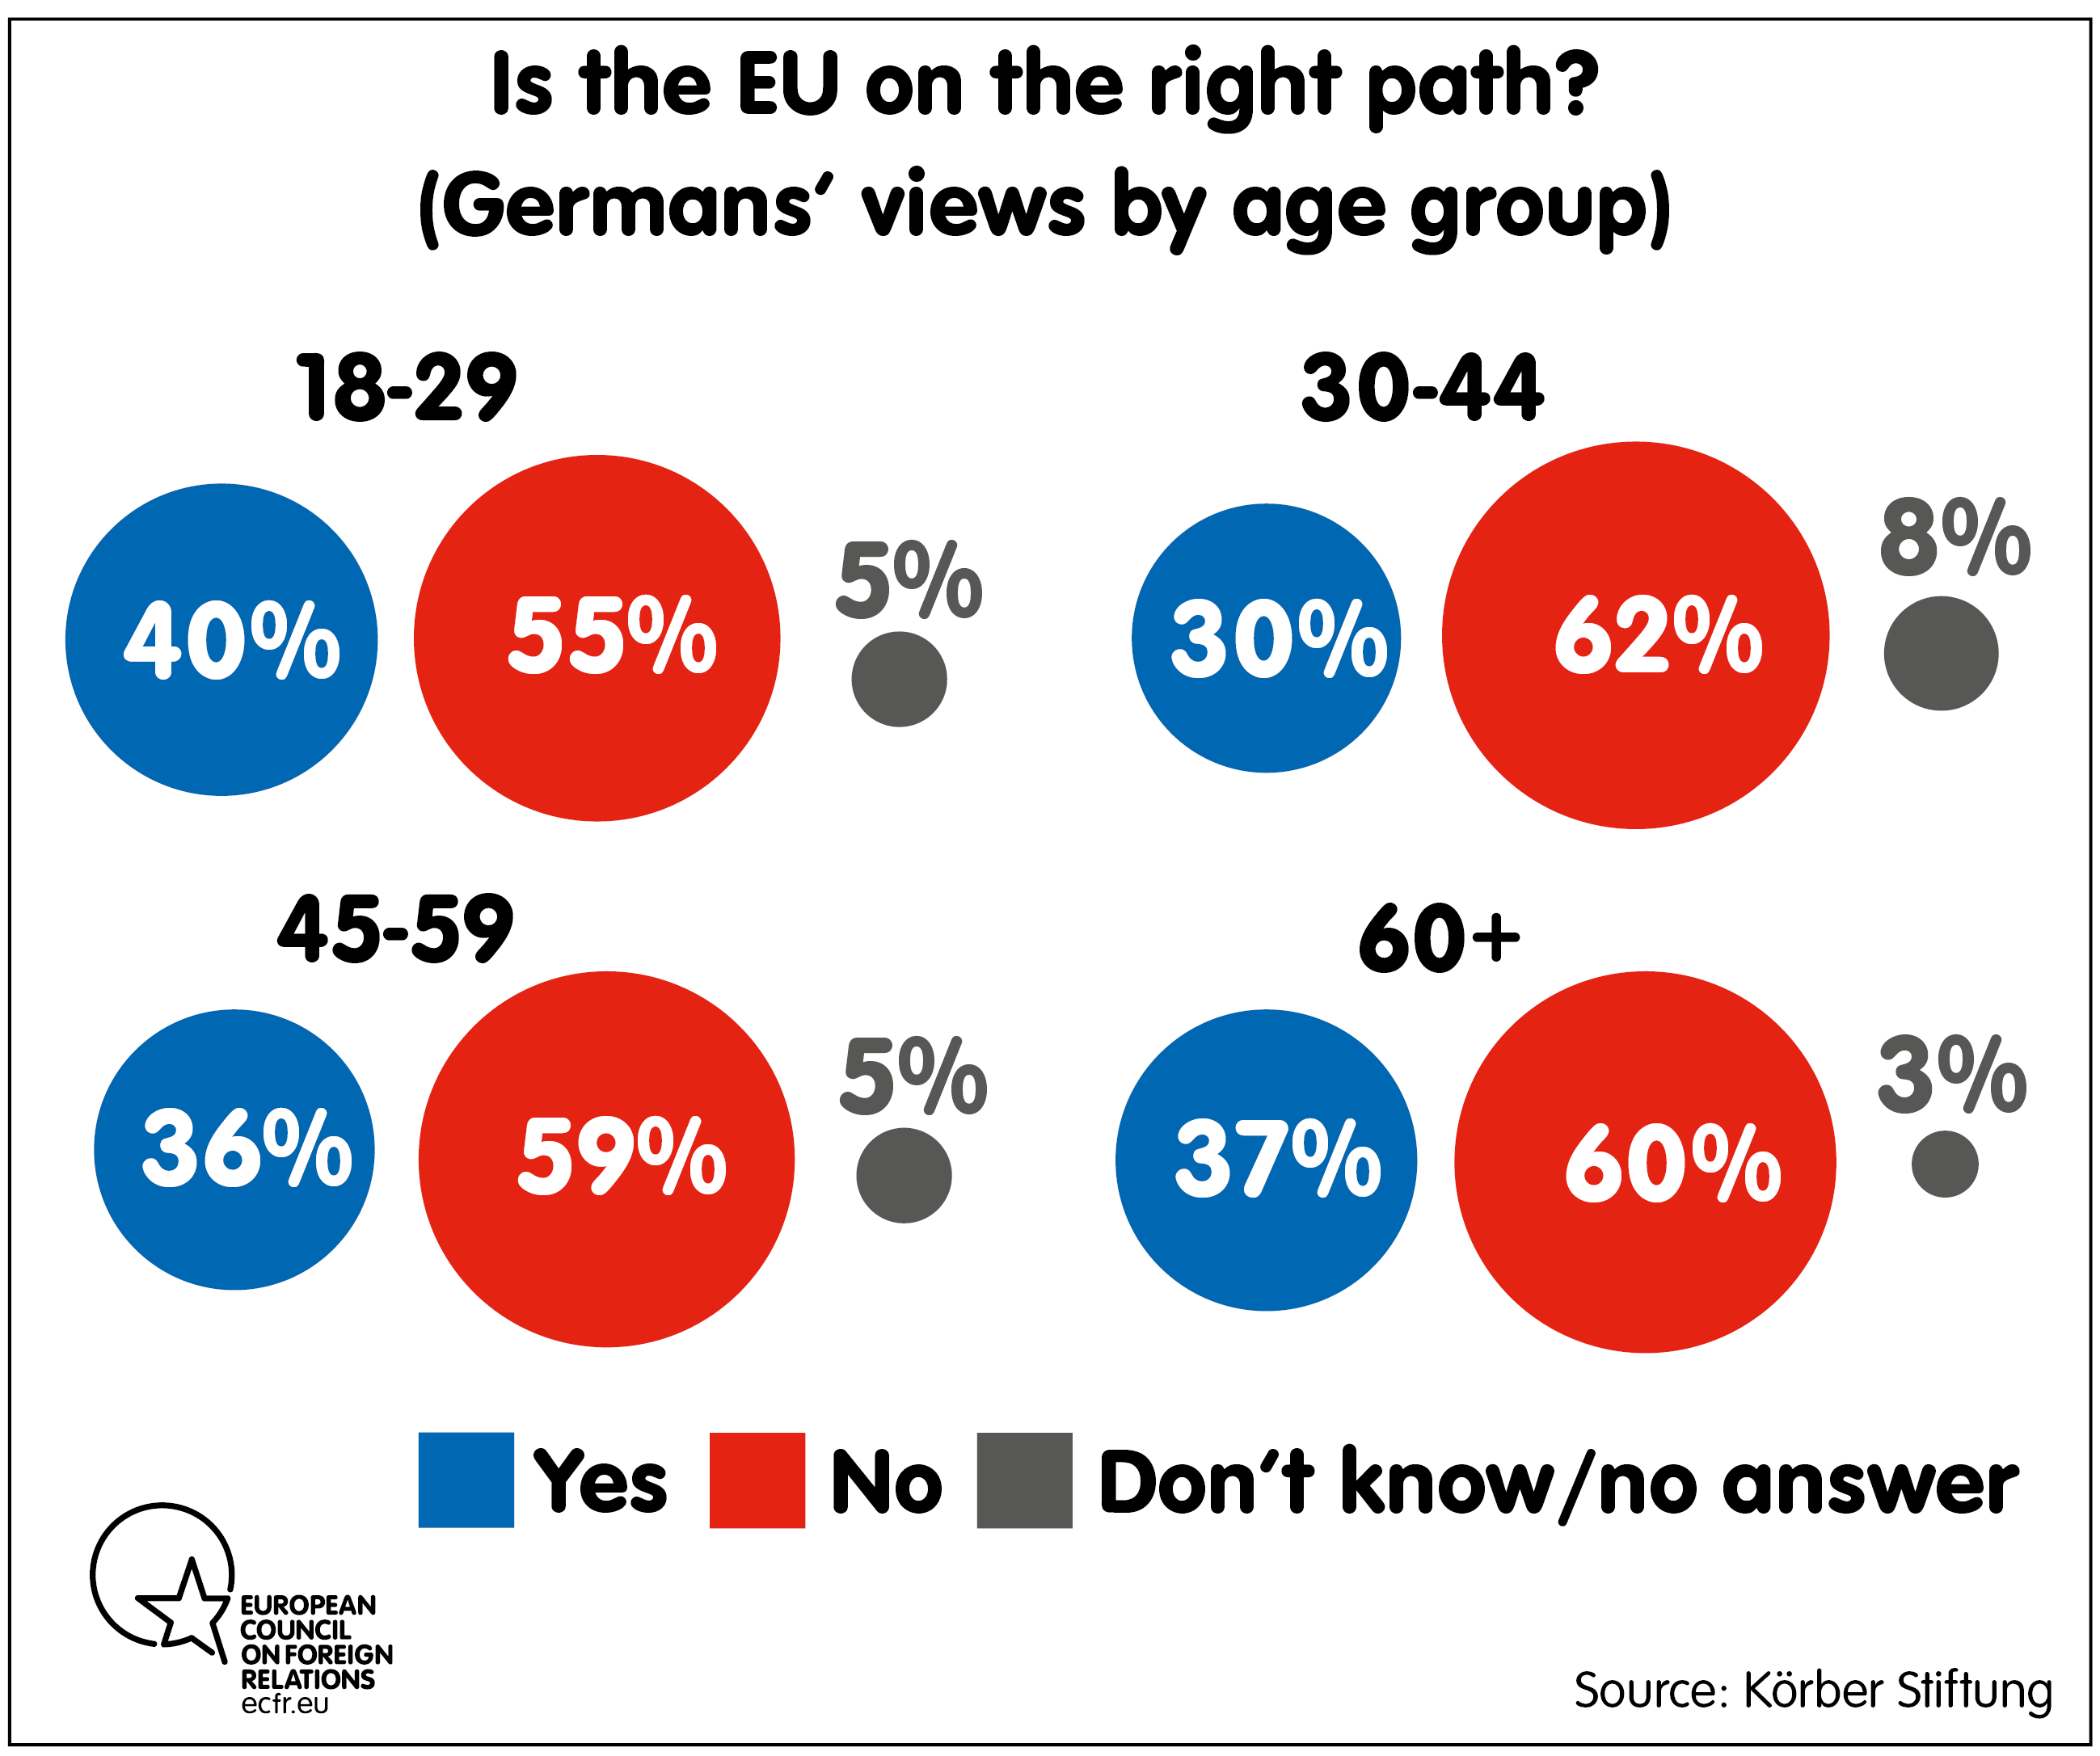 Is the EU on the right path